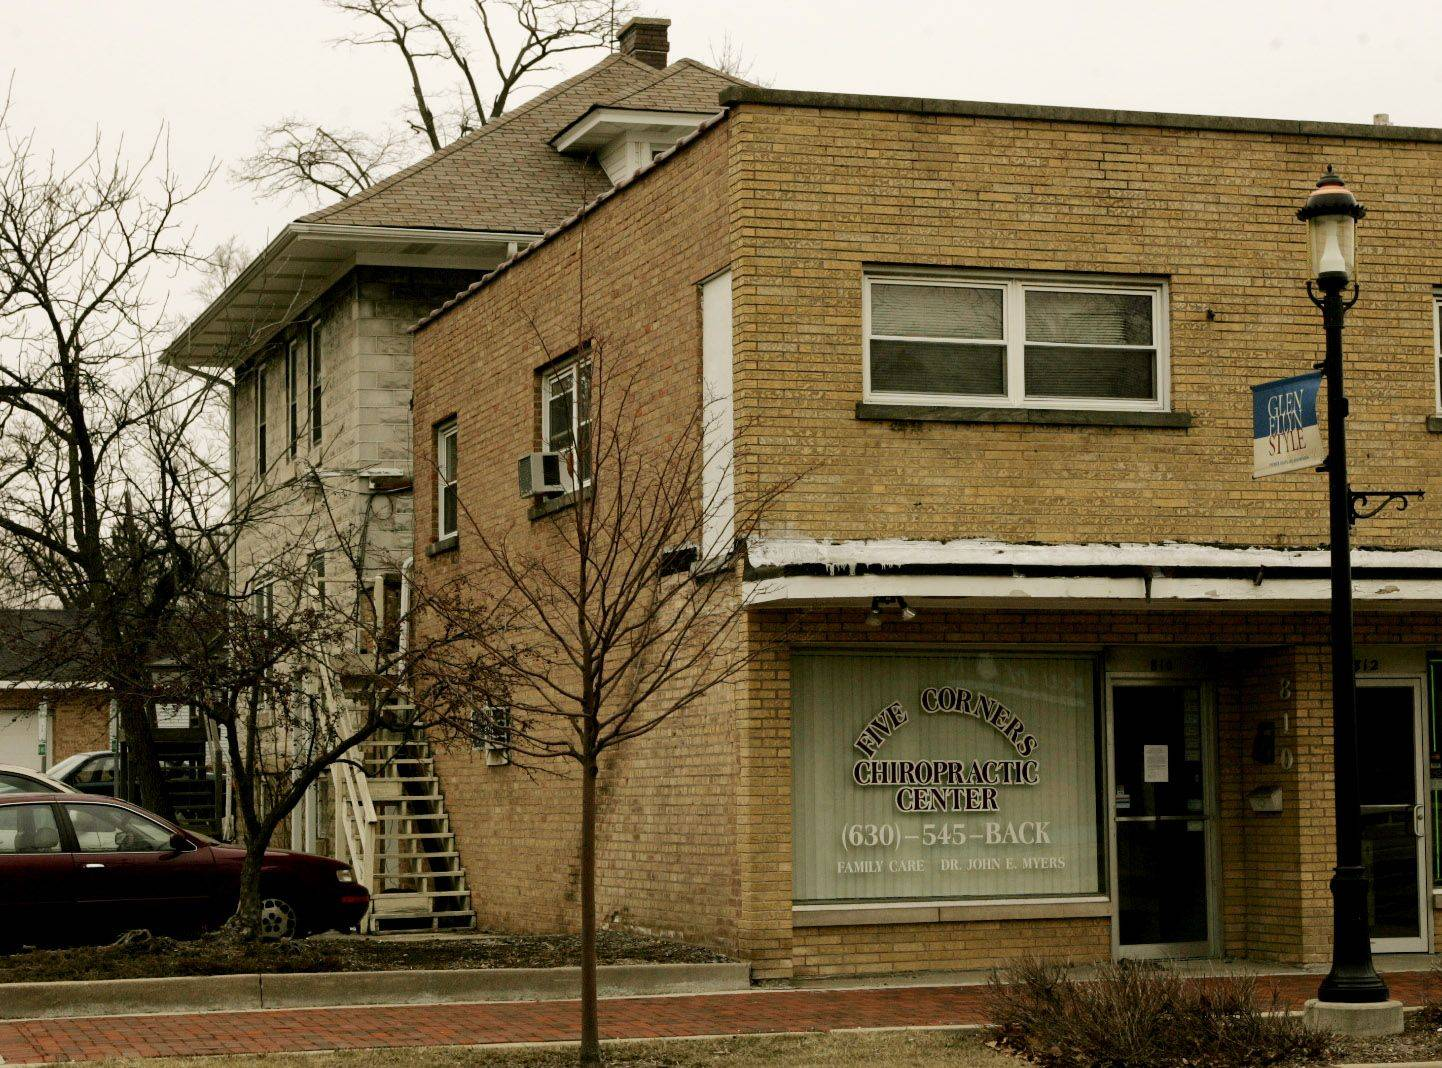 A task force report to the village of Glen Ellyn recommends a house at the back of the property at 810 N. Main St. be demolished, while the attached storefront commercial space be kept.